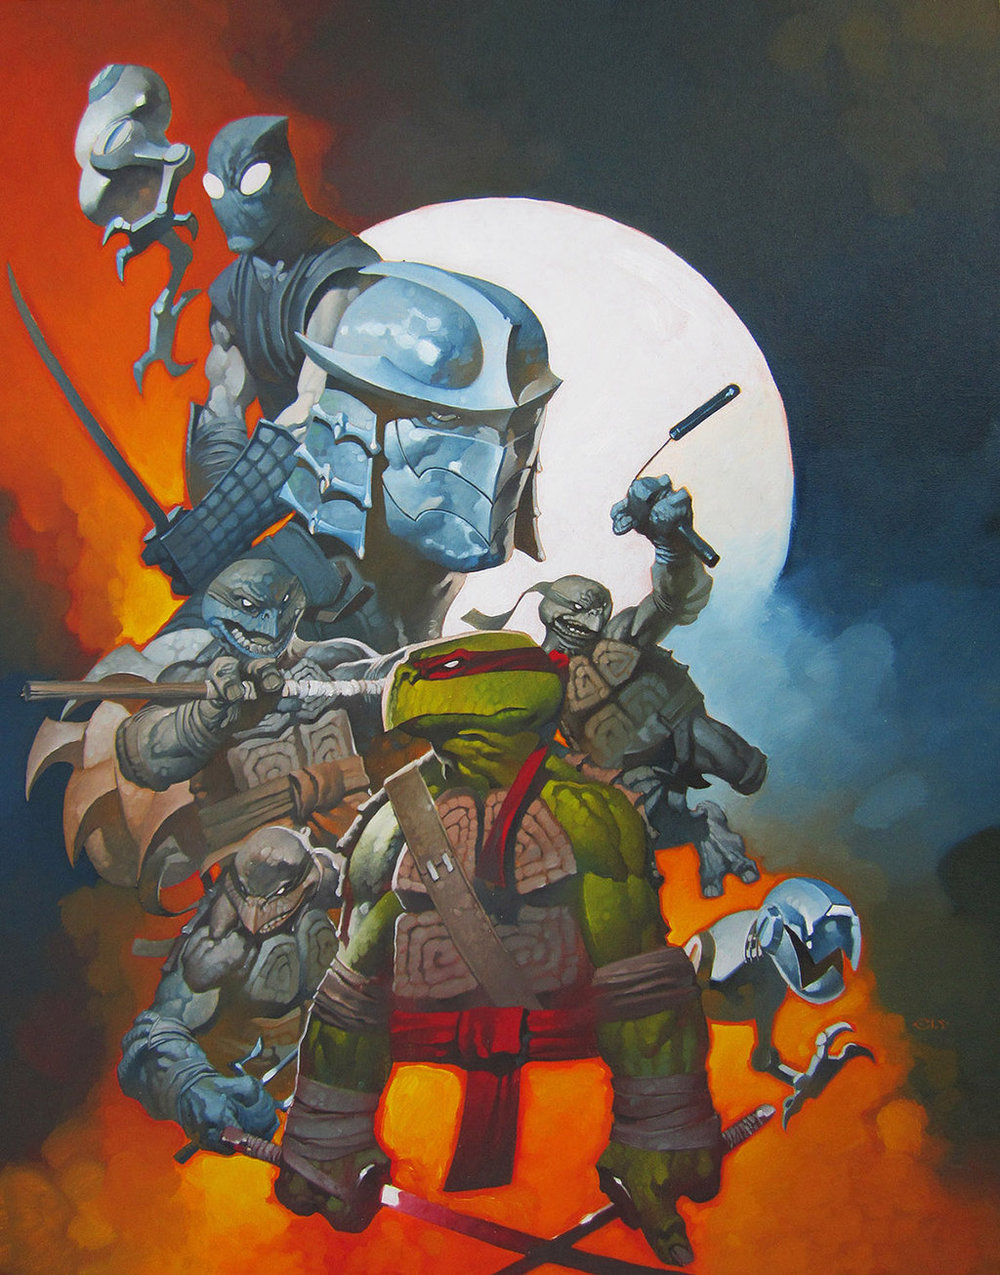 tmnt_by_christopherstevens-d8hqmmq.jpg